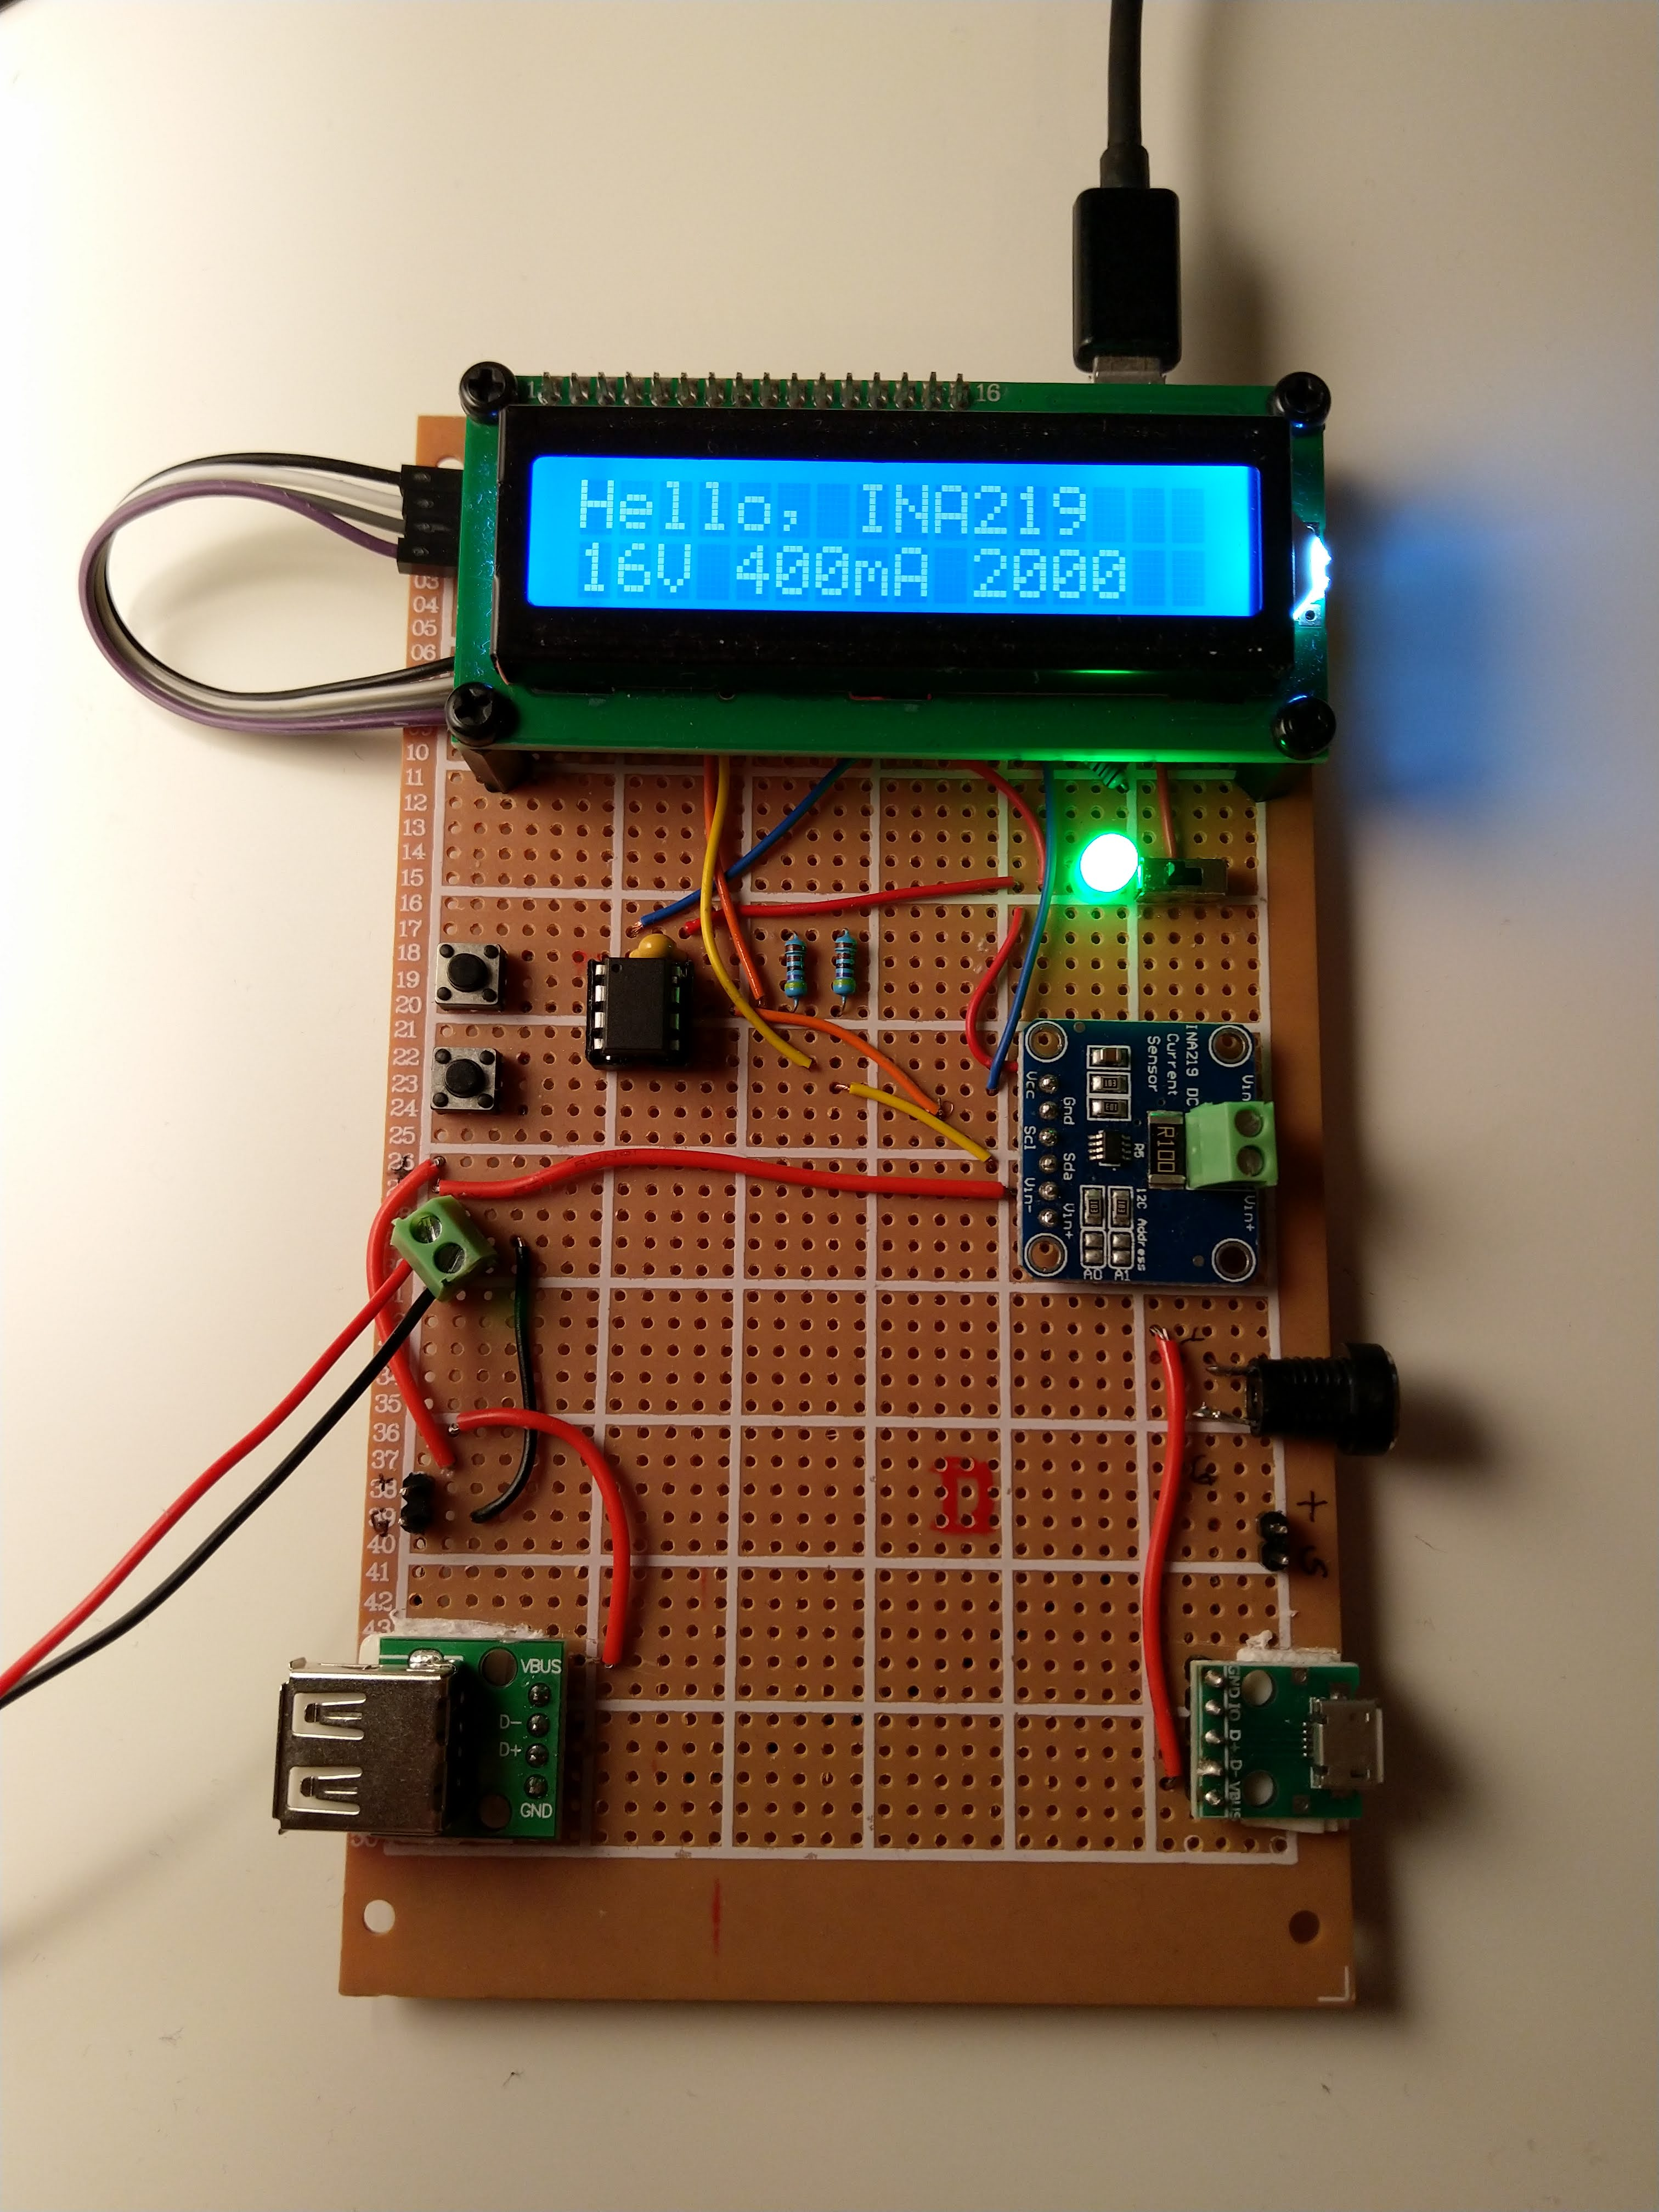 INA219+Attiny85 measurement unit